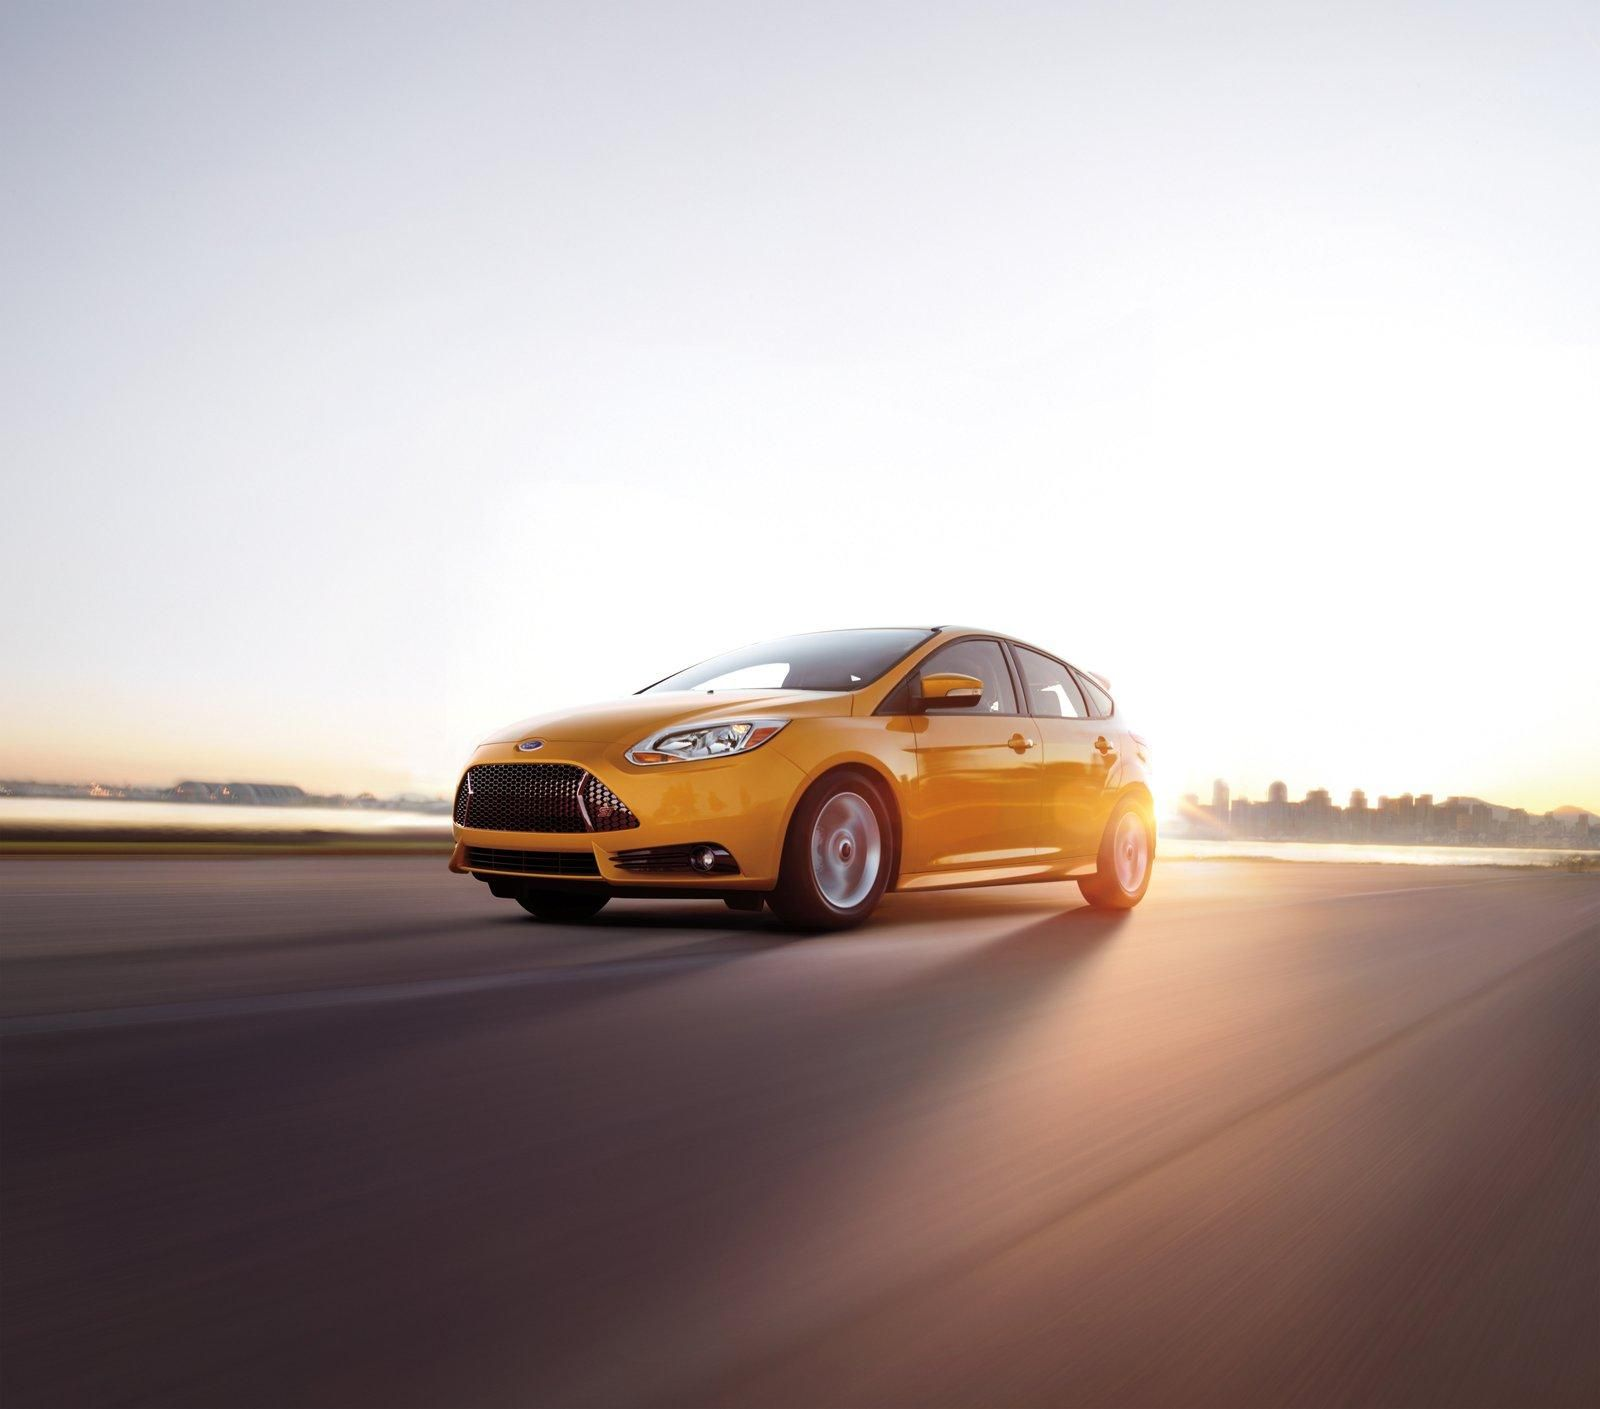 Ford Focus St 2013 Ford Focus St Wallpapers Car Walls Ford Focus St Ford Focus Ford News